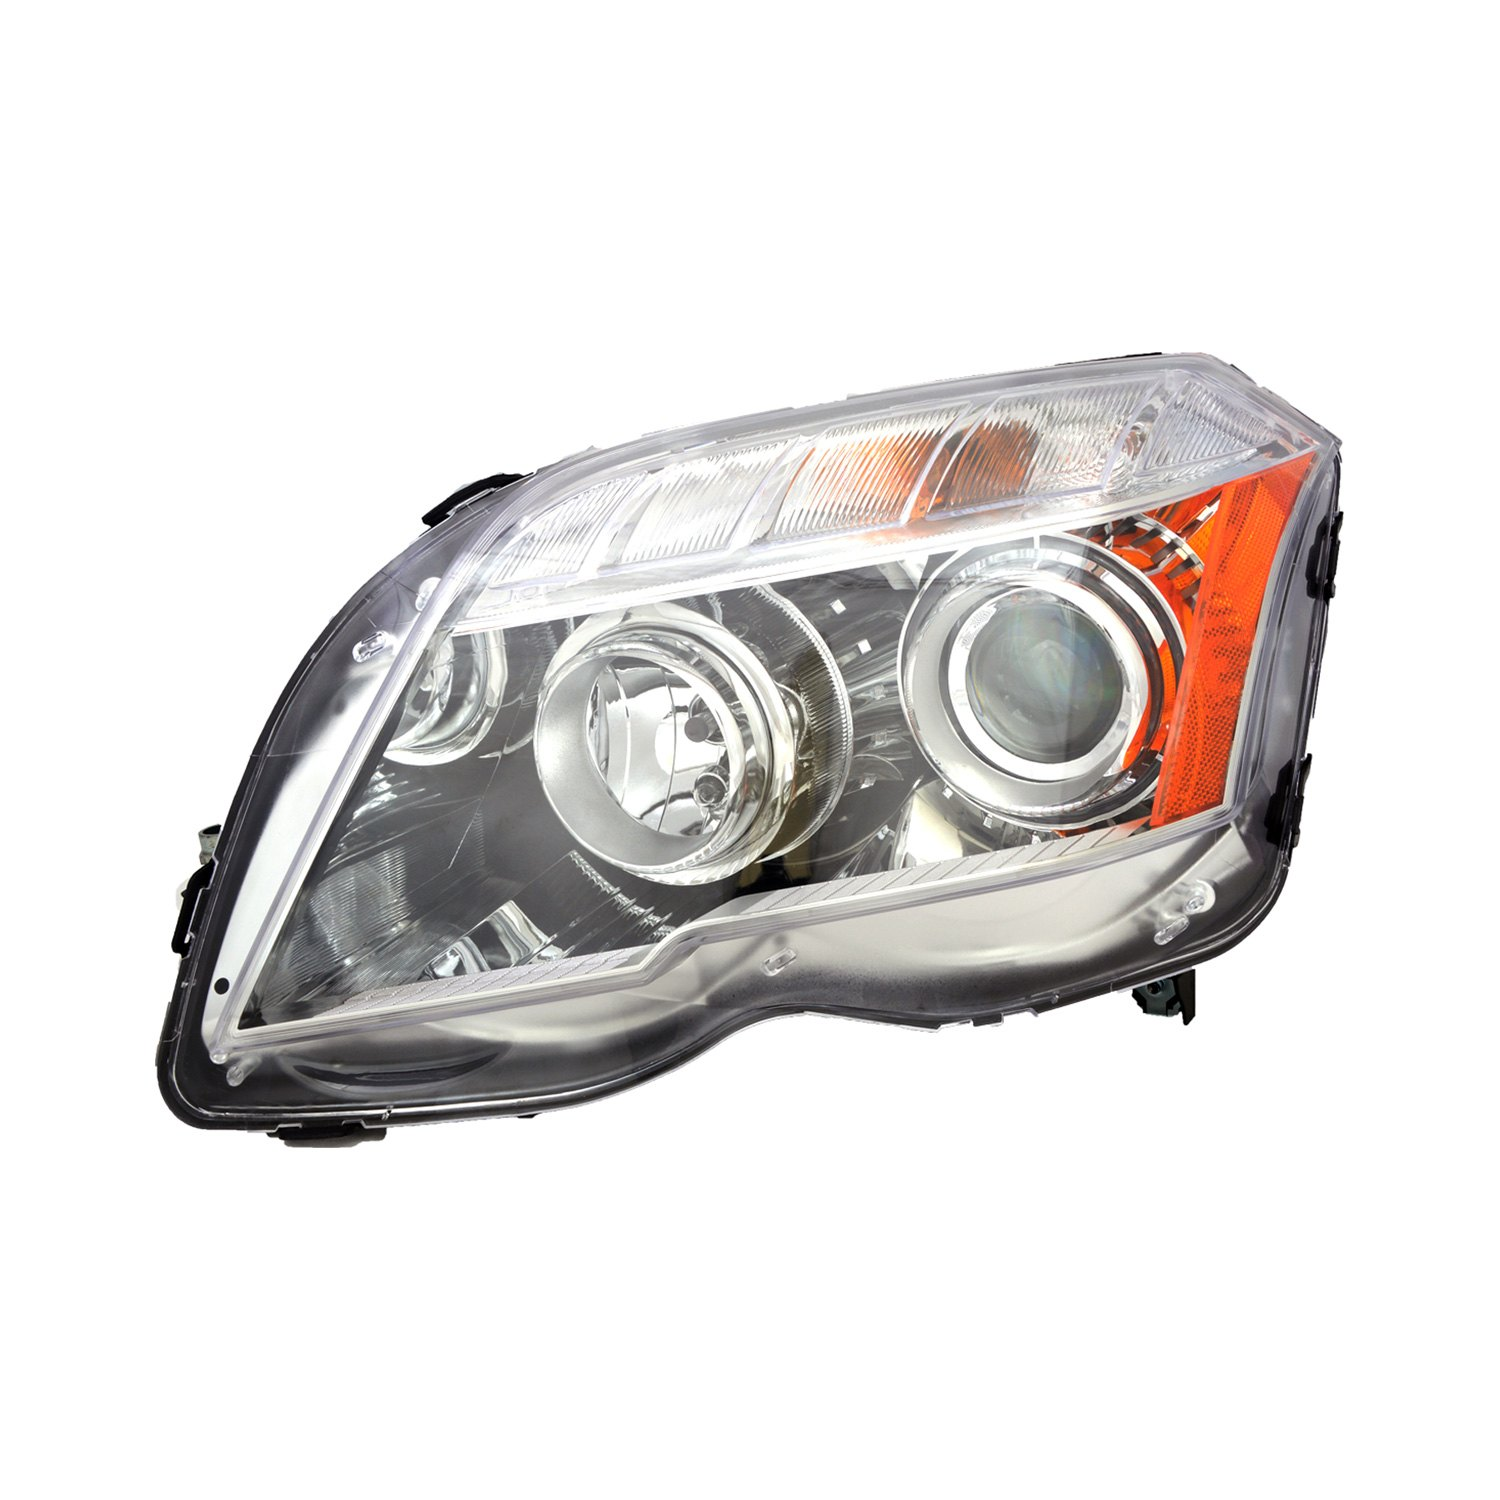 Replace mercedes glk350 with factory halogen headlights for Mercedes benz aftermarket headlights